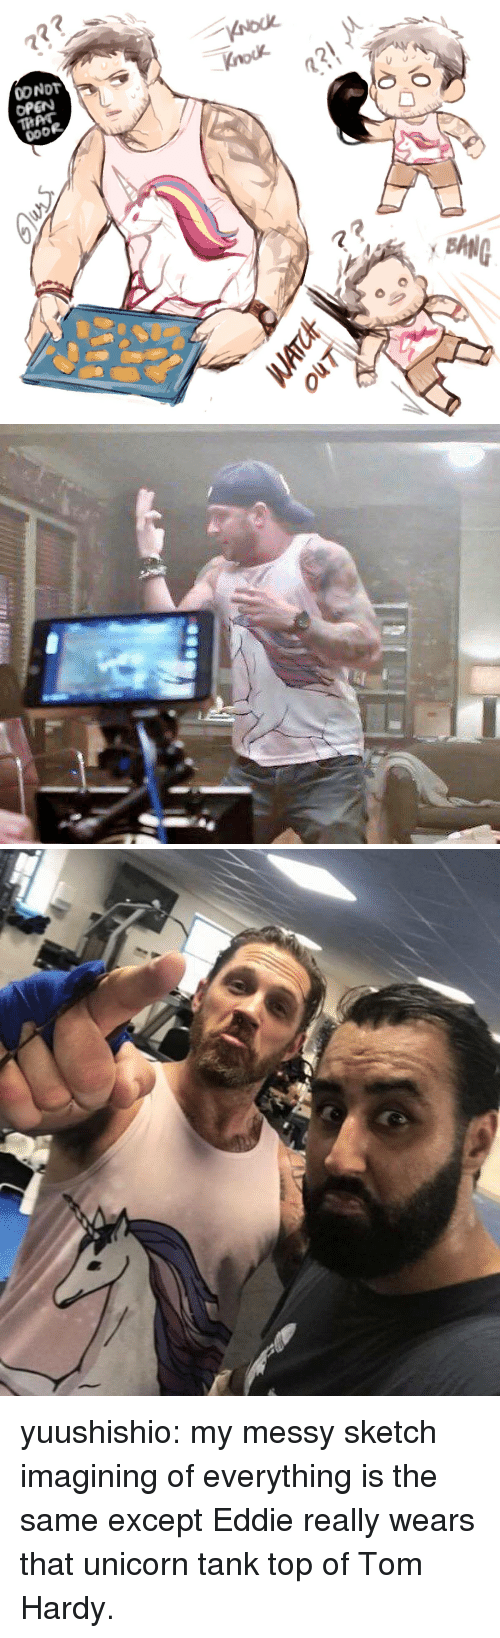 Tom Hardy, Tumblr, and Blog: 7?3  OPEN  TRAC  DOOR  Knok  21  72 yuushishio: my messy sketch imagining of everything is the same except Eddie really wears that unicorn tank top of Tom Hardy.